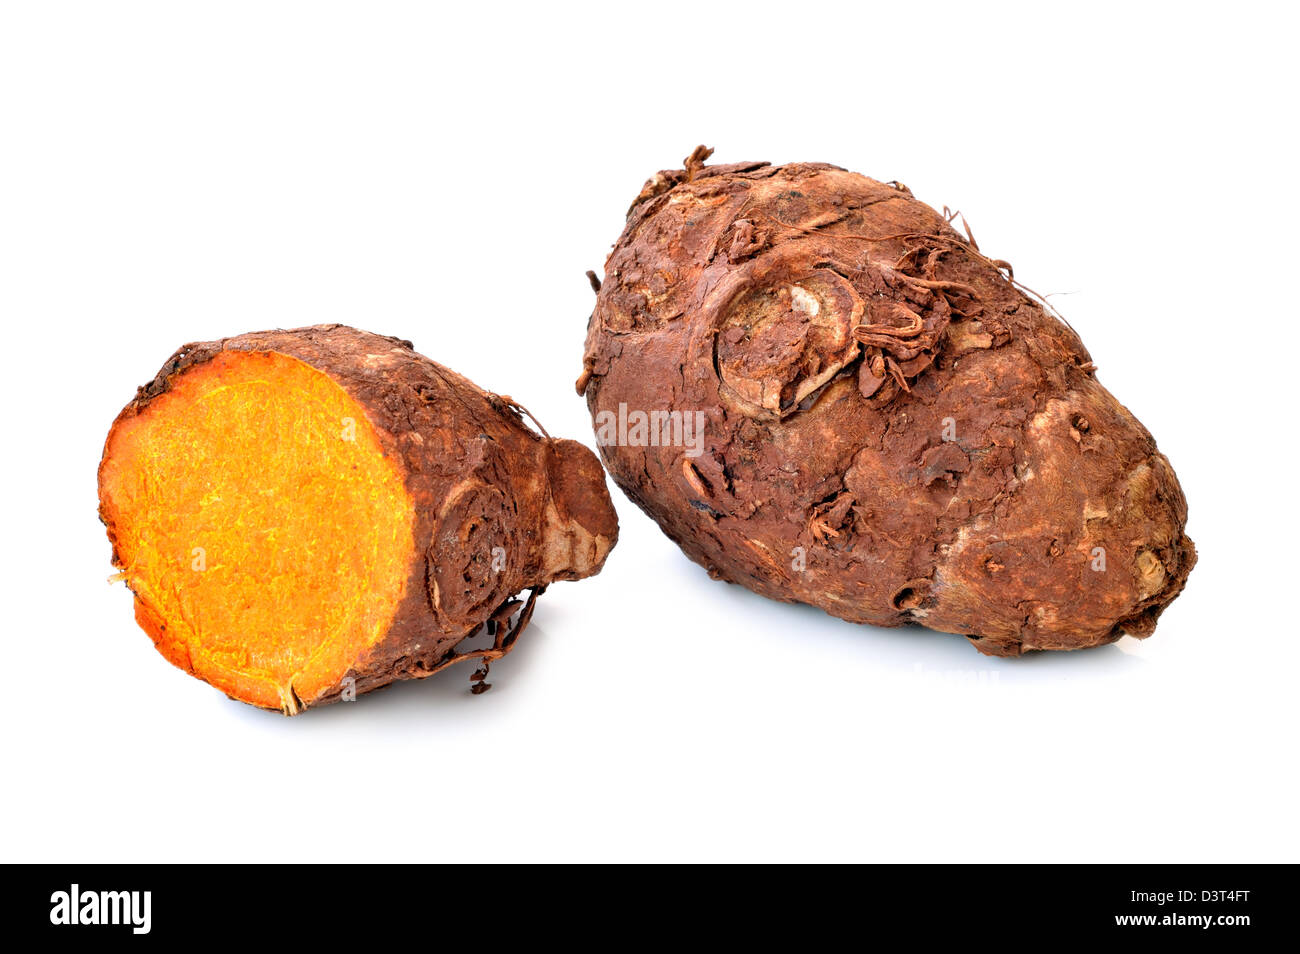 turmeric-root-on-a-white-background-close-up-D3T4FT.jpg